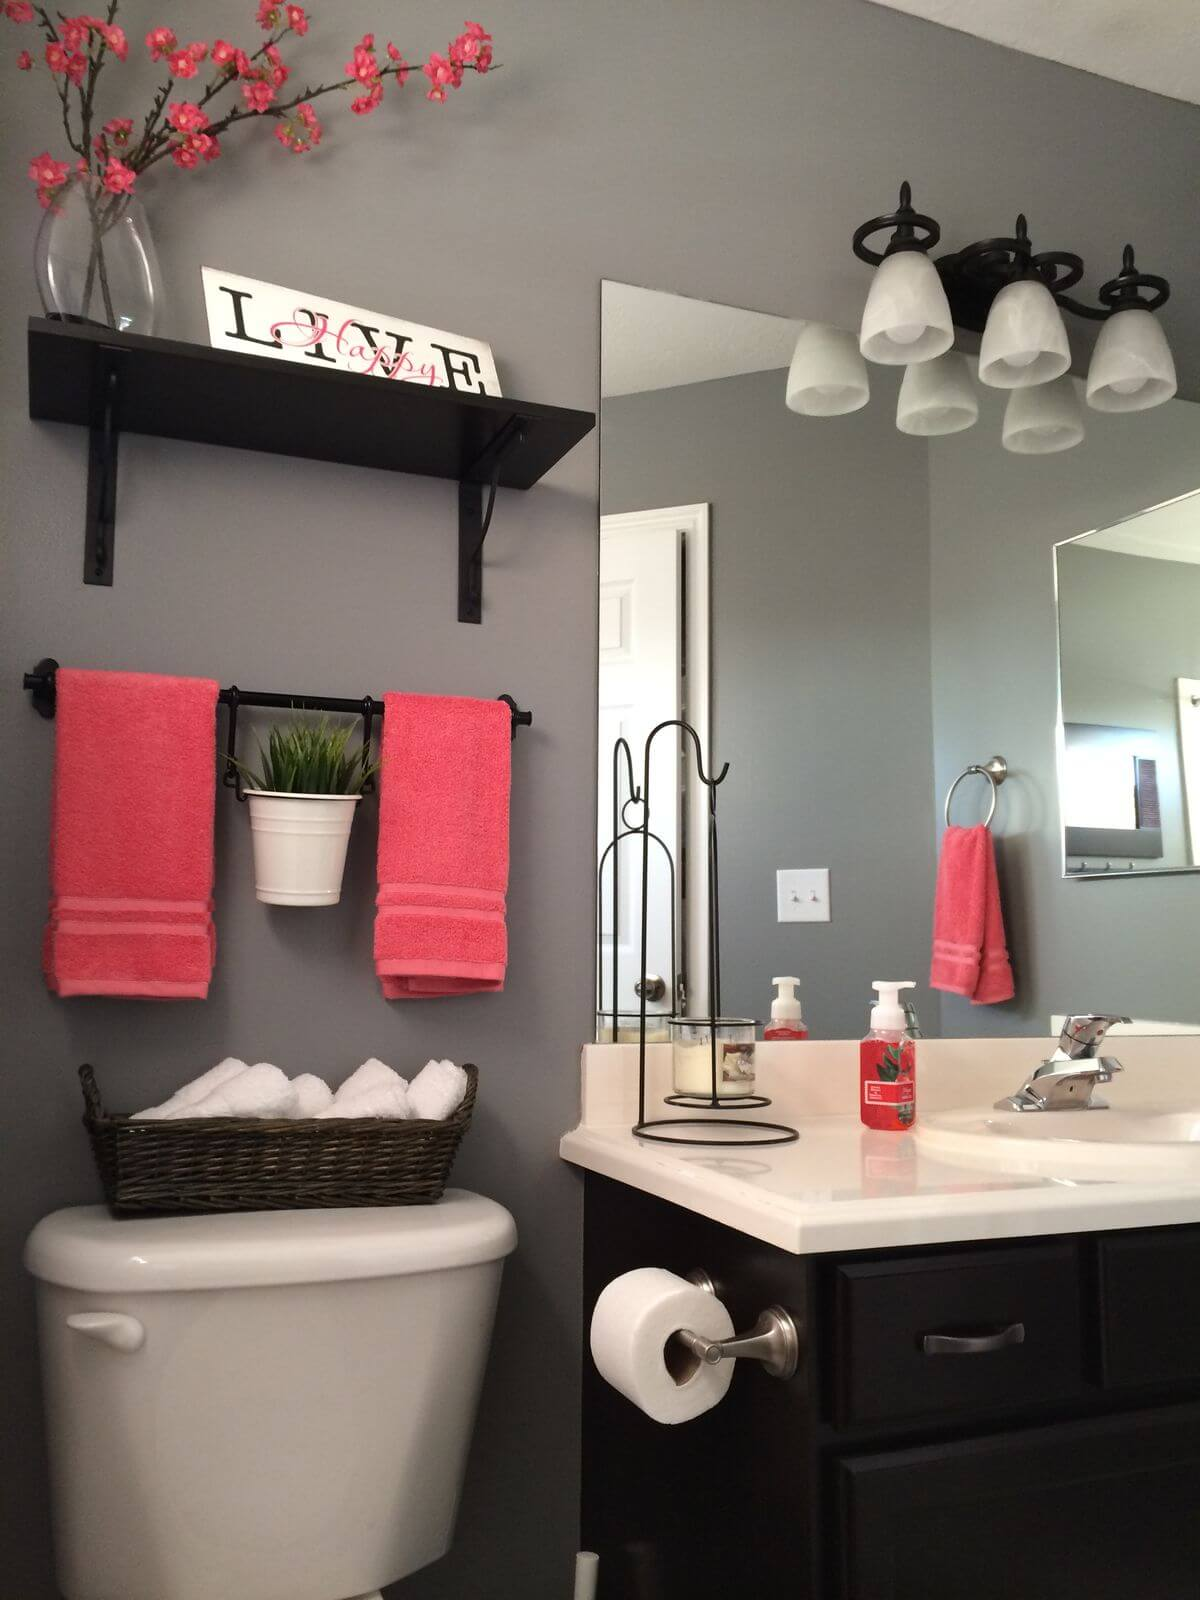 32 best over the toilet storage ideas and designs for 2017 11 easy ways to make your rental bathroom look stylish